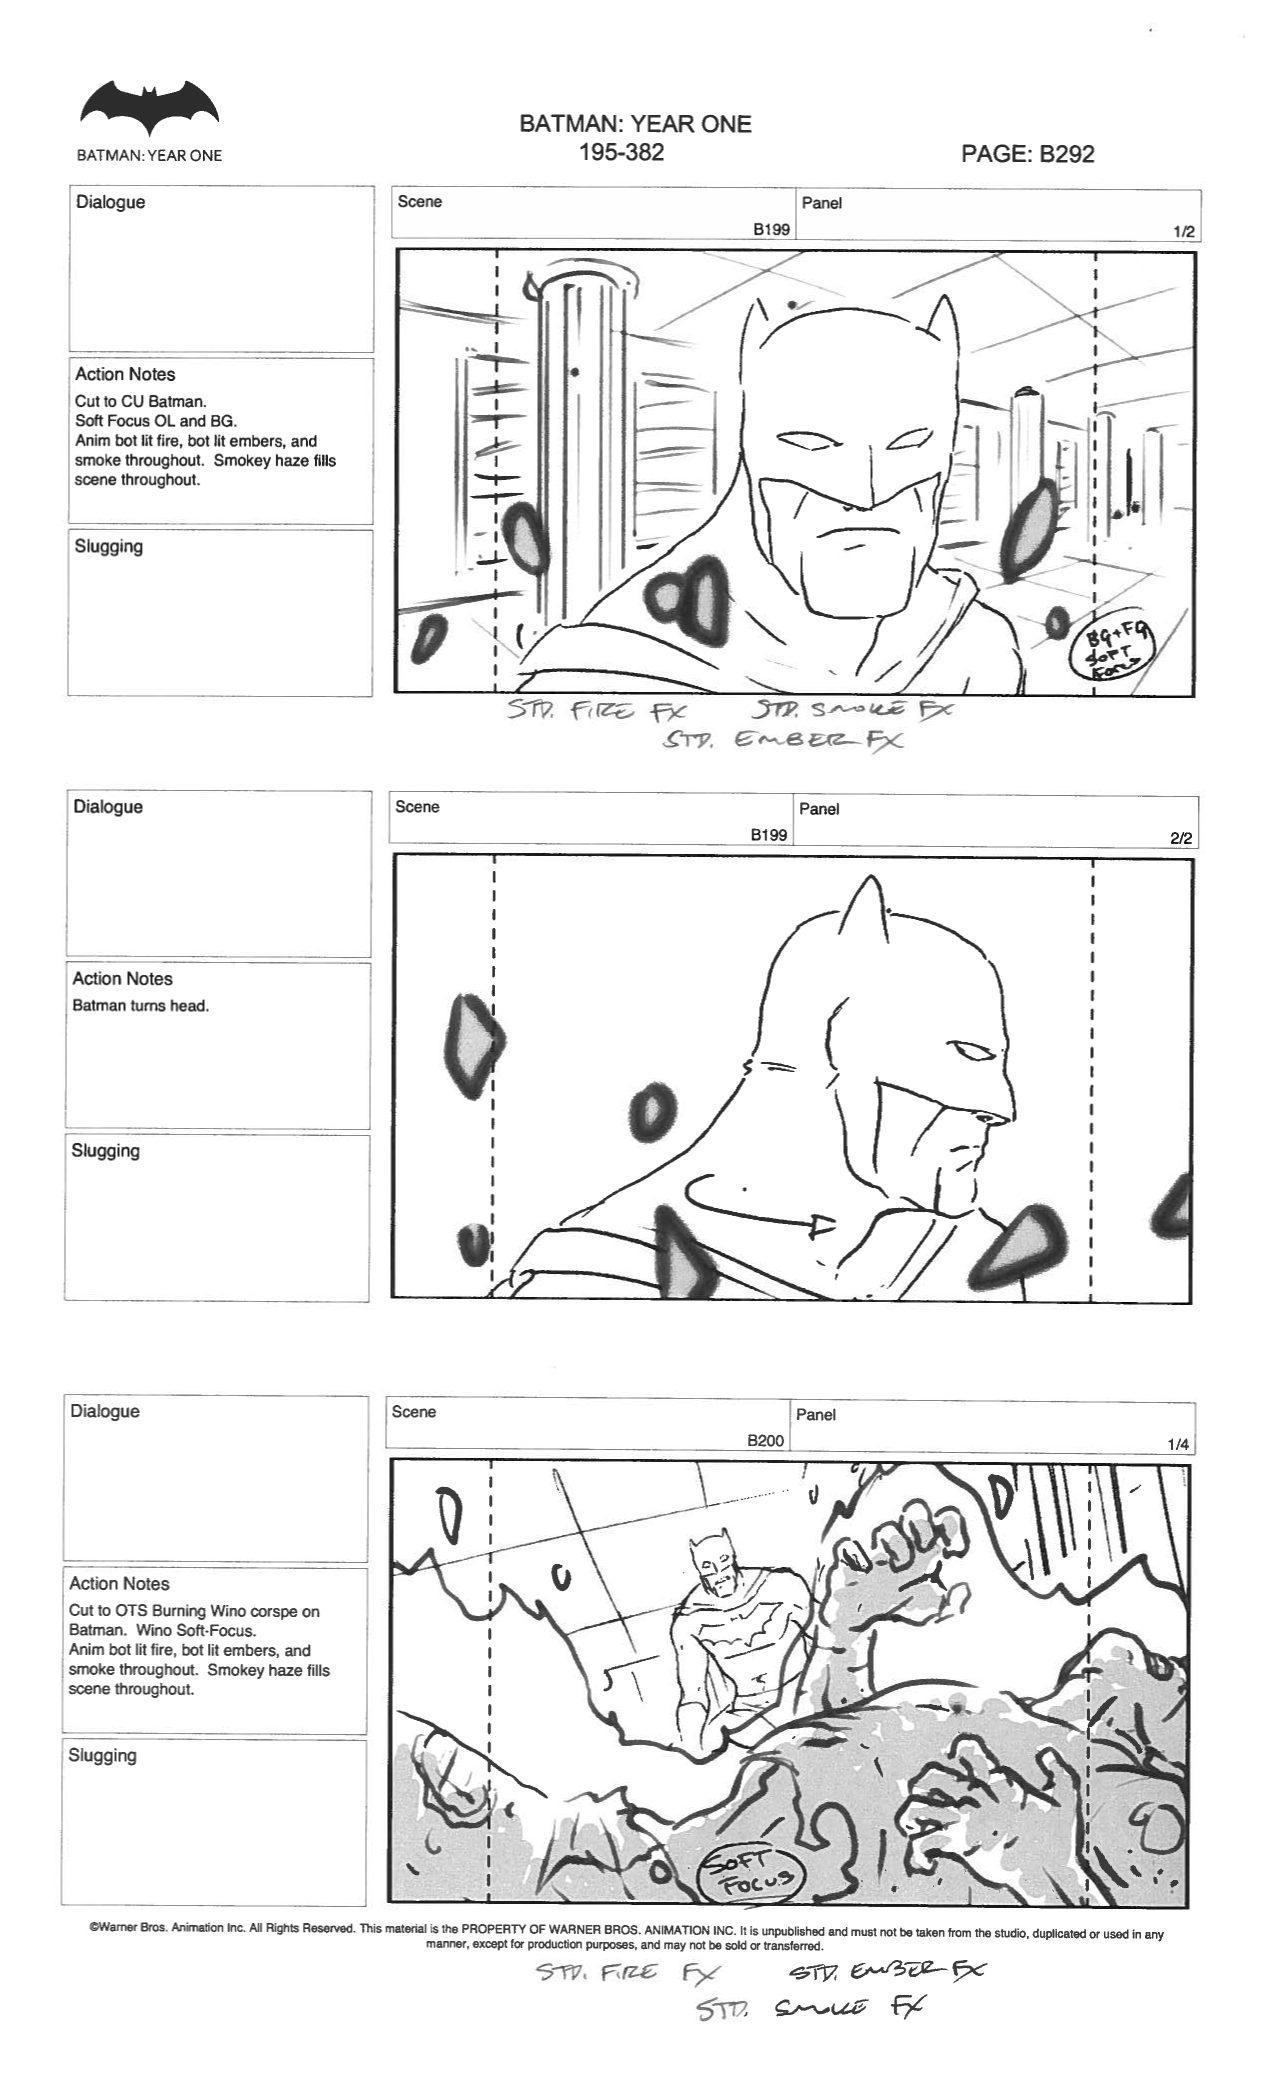 Batman Year One storyboards pt1 by ZWYER